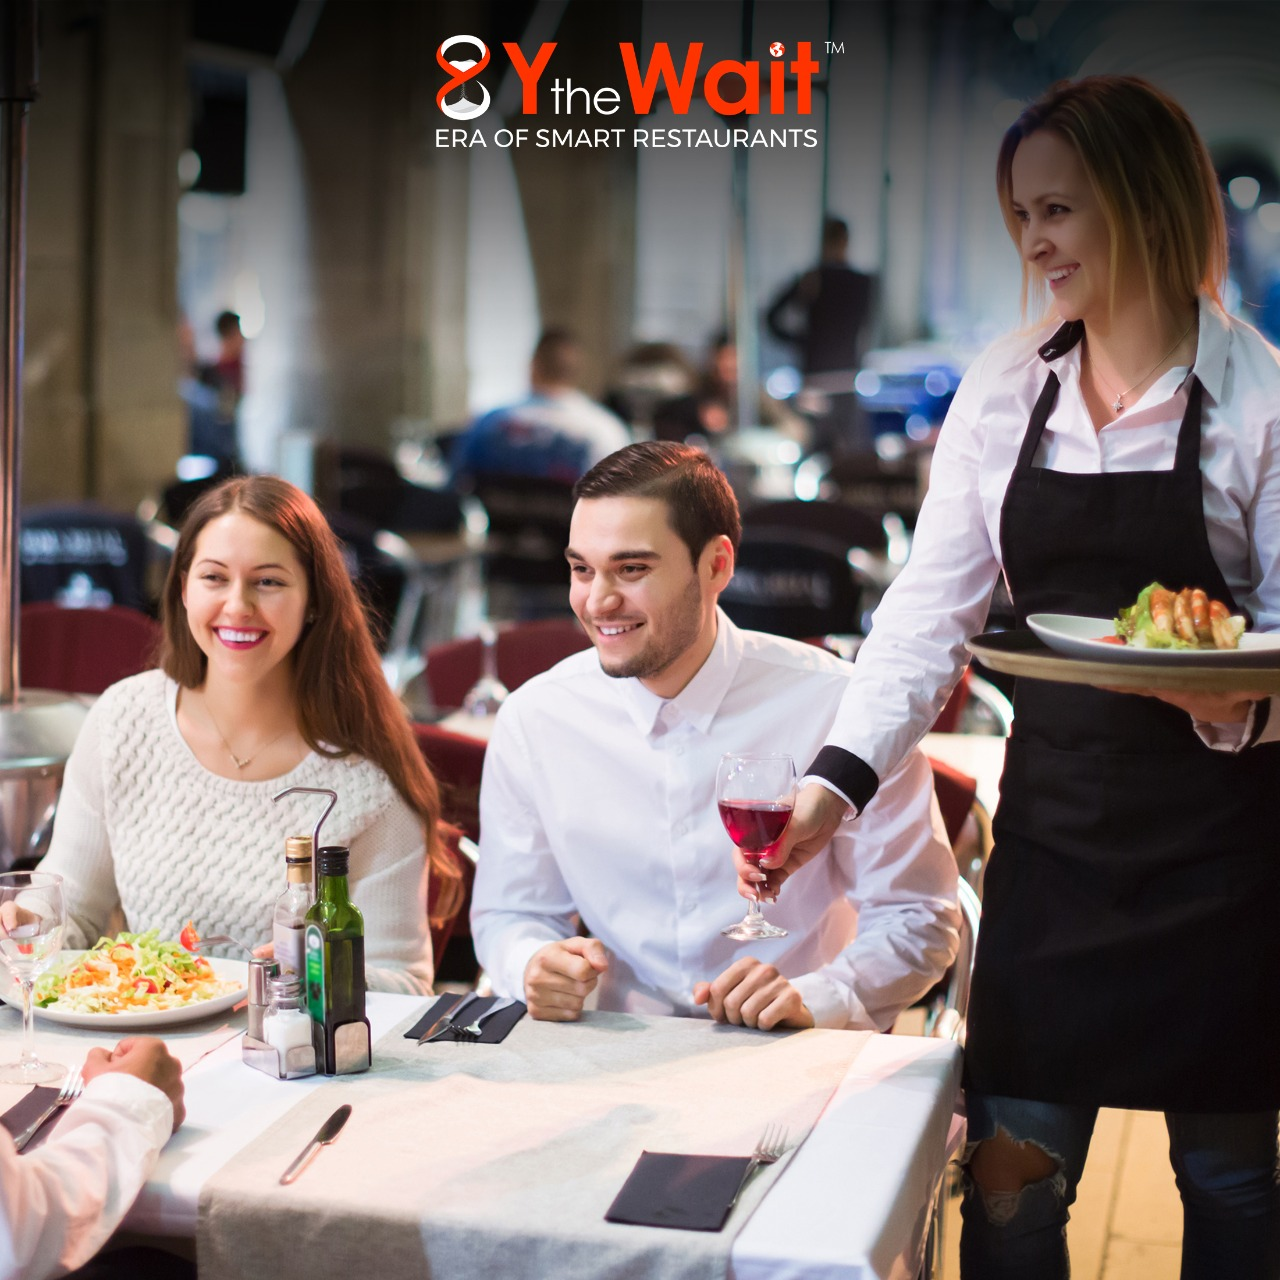 Y the Wait - Digital Waiter App - Smart Dine In